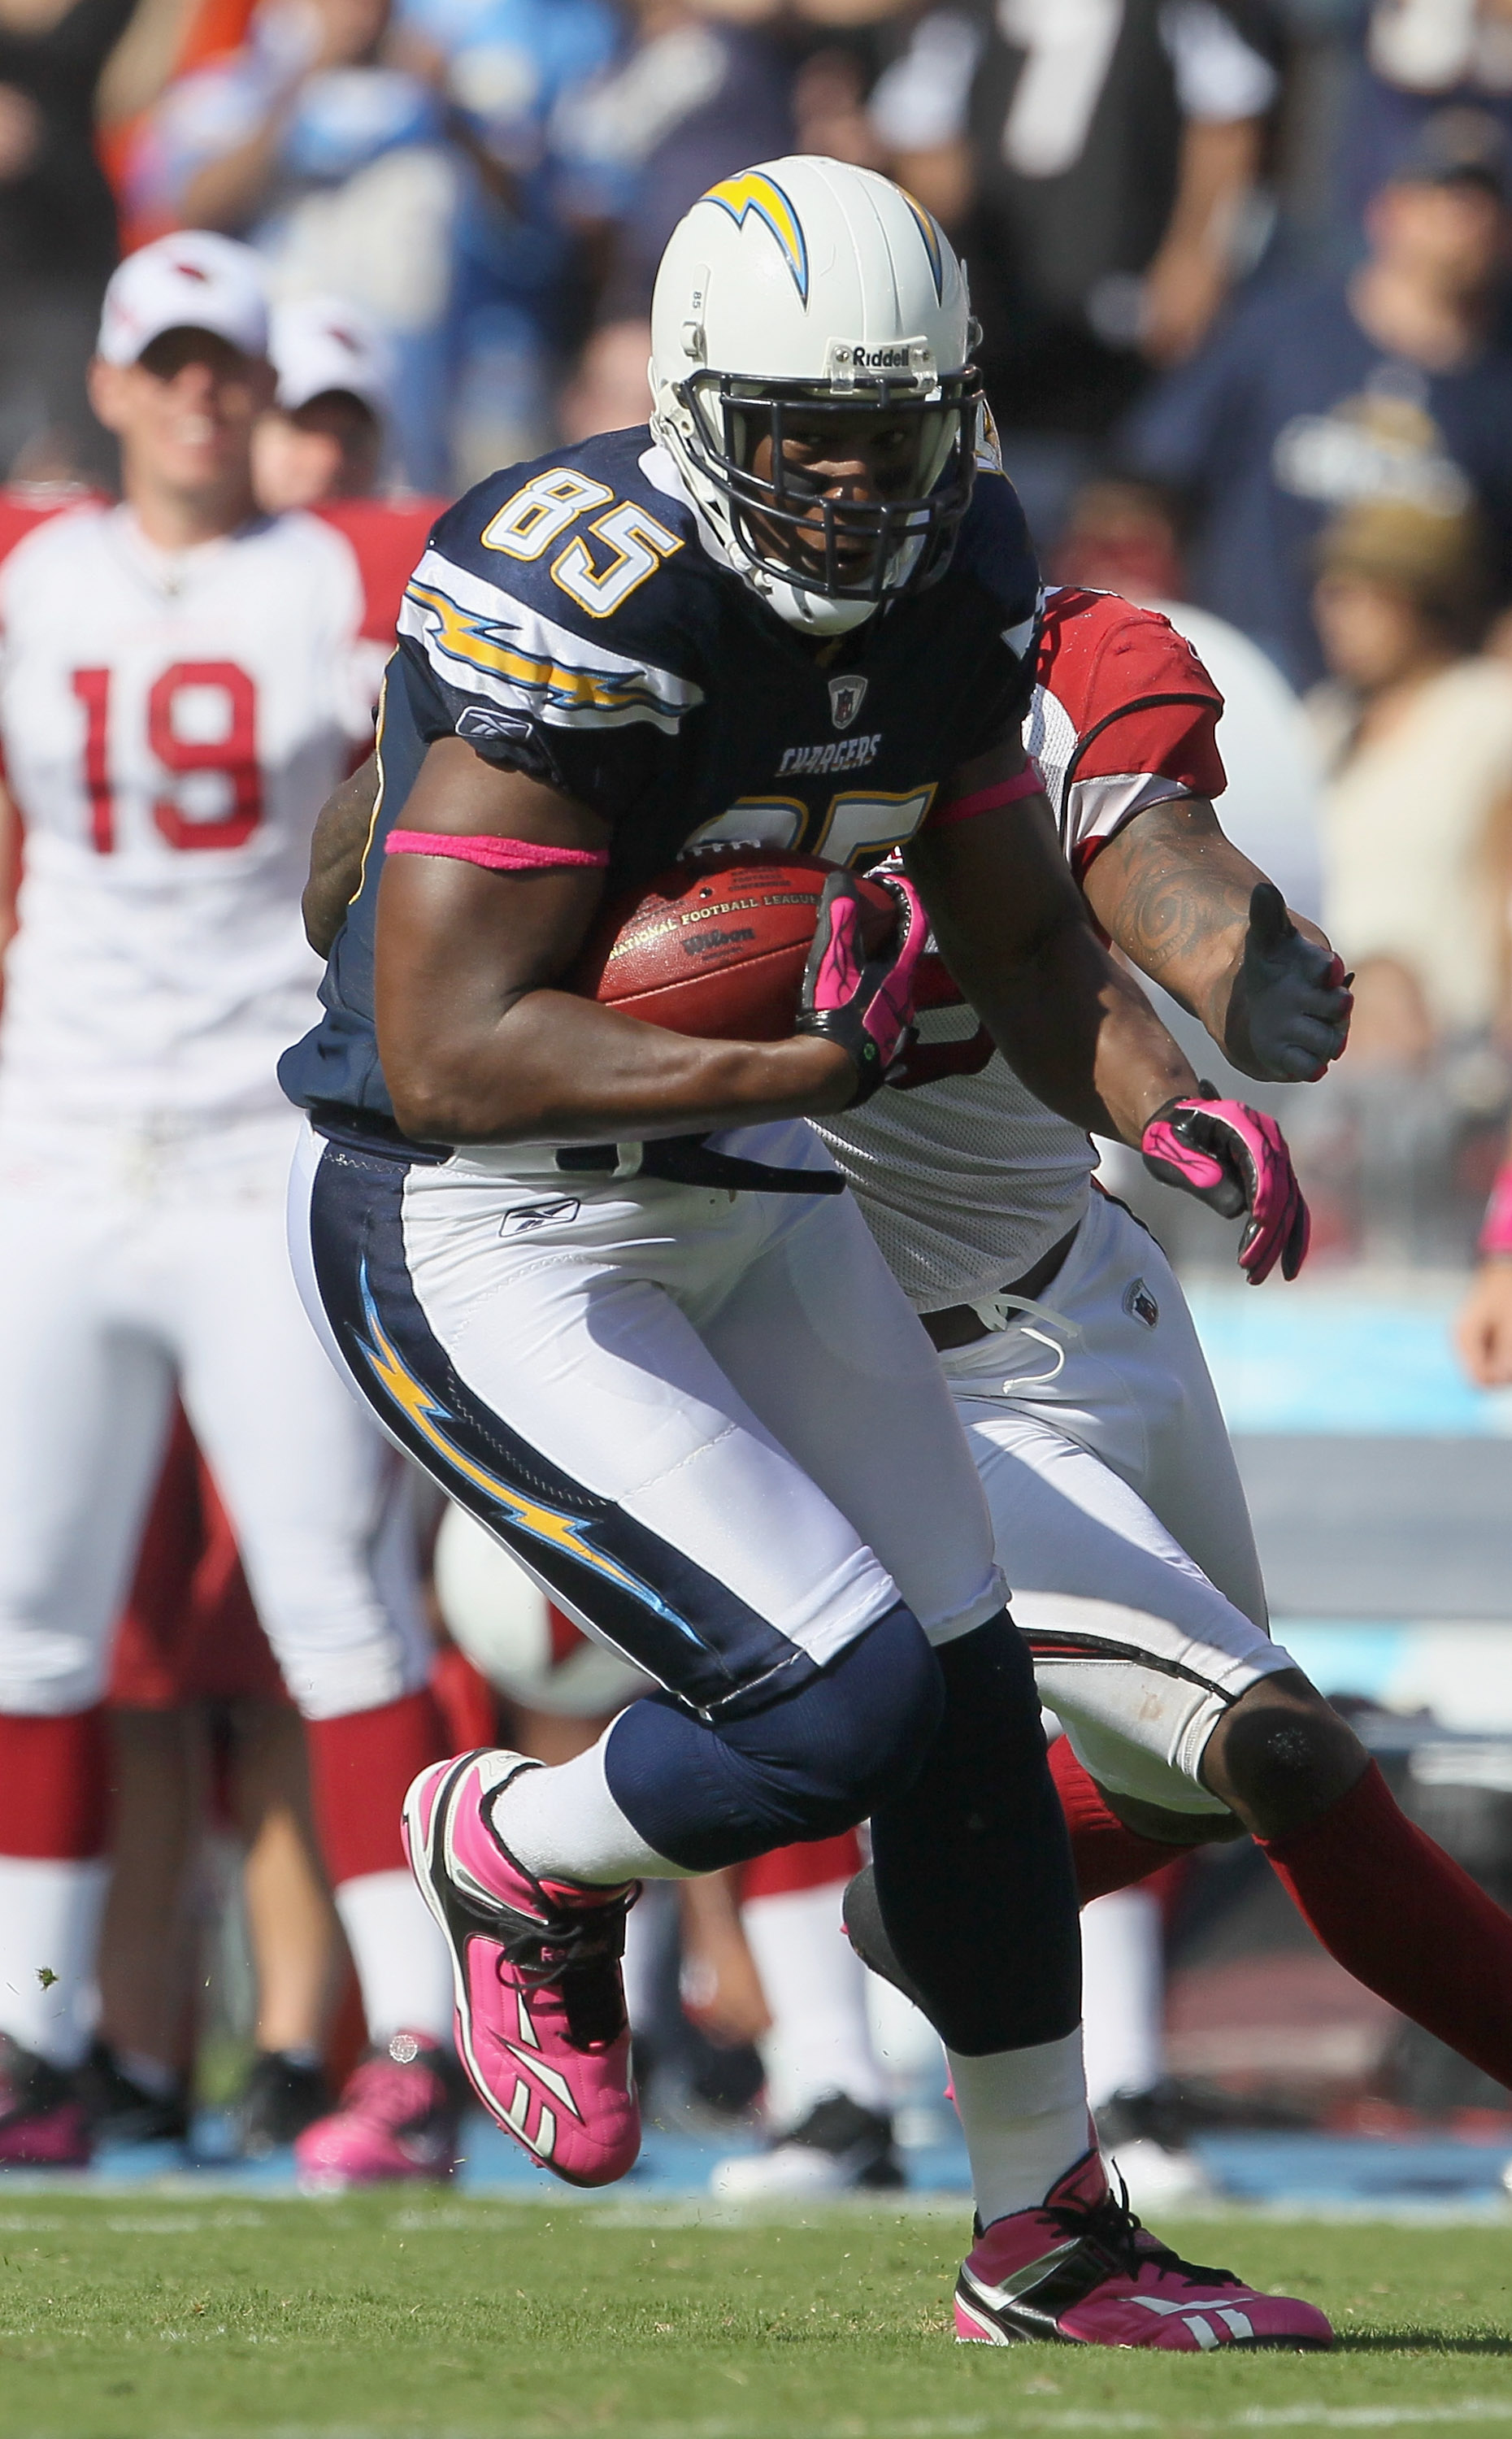 SAN DIEGO - OCTOBER 03:  Tight end Antonio Gates #85 of the San Diego Chargers carries the ball in the third quarter against the Arizona Cardinals at Qualcomm Stadium on October 3, 2010 in San Diego, California. The Chargers defeated the Cardinals 41-10.